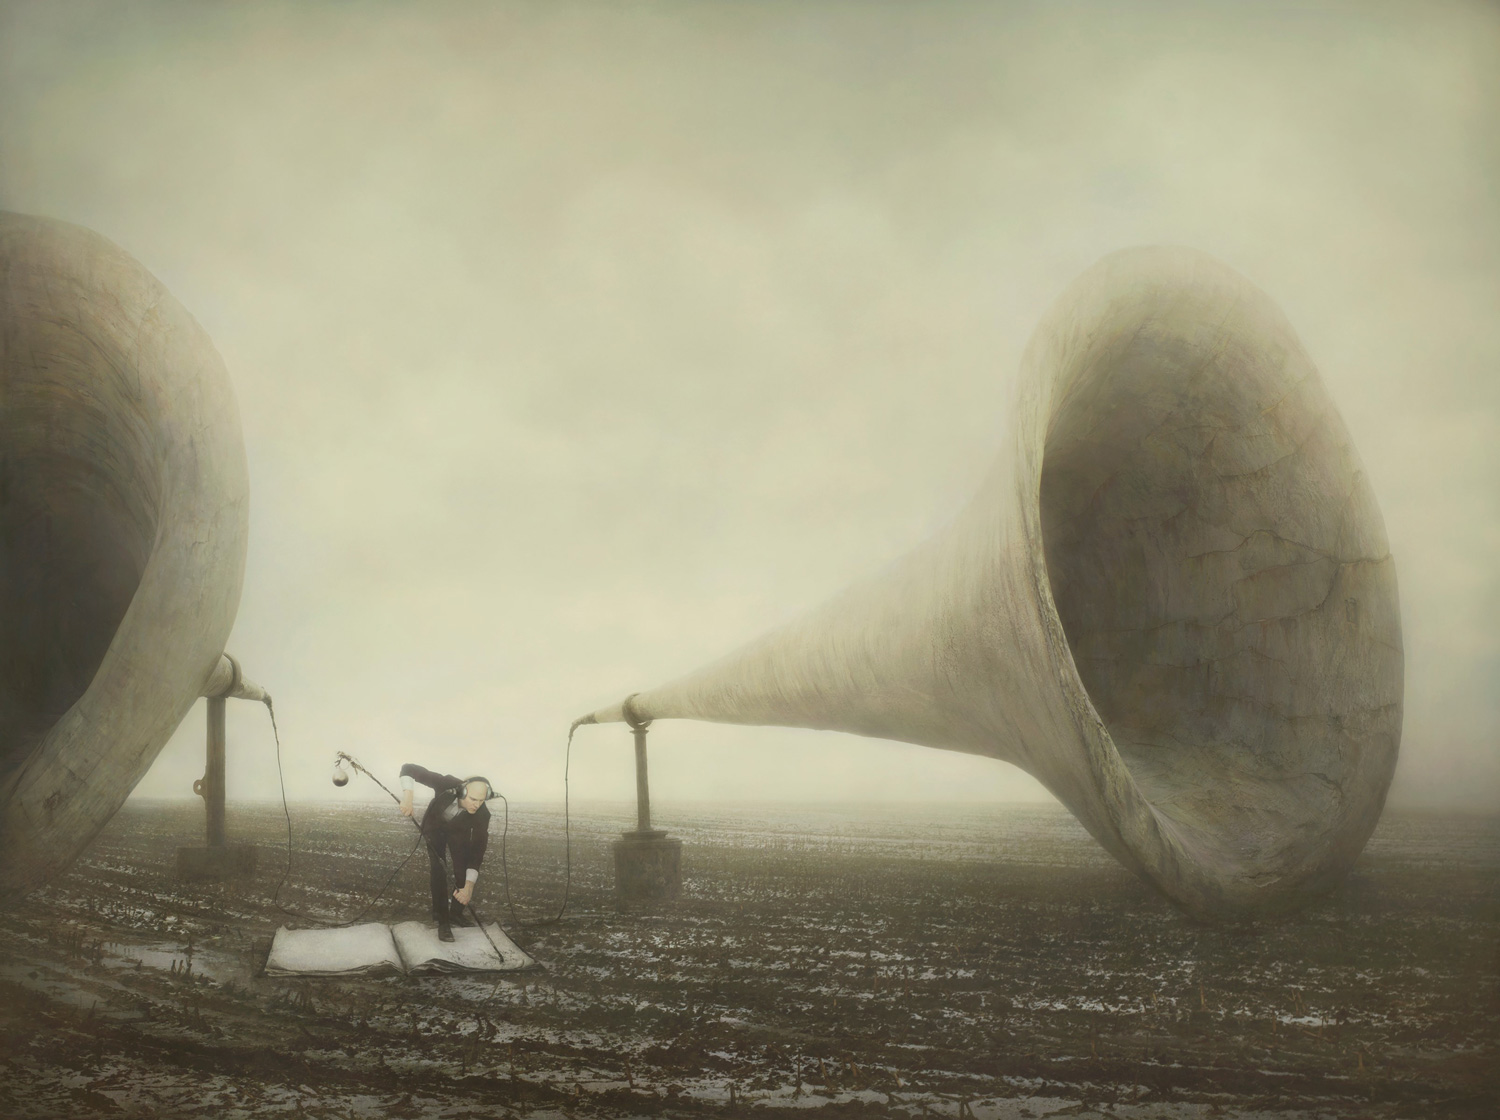 """Robert and Shana ParkeHarrison, """"First of May"""" (2015) (courtesy of Catherine Edelman Gallery, Chicago, Ill.)"""